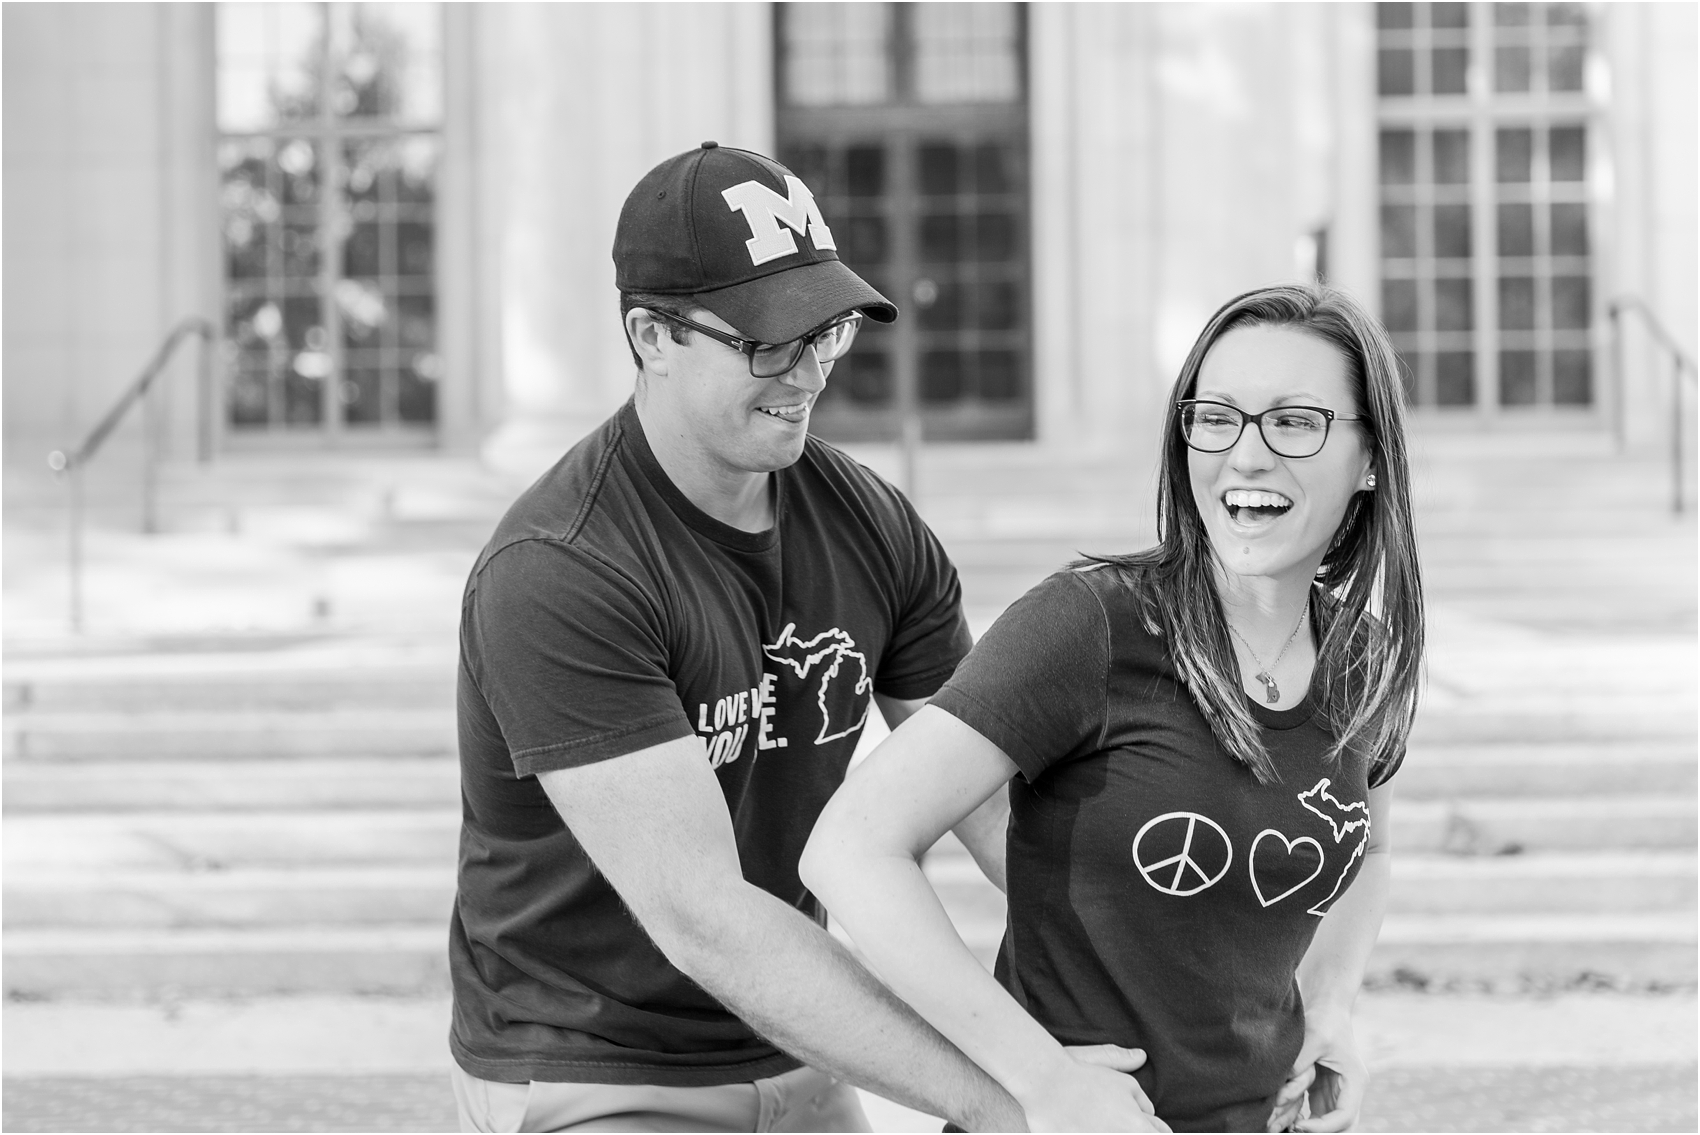 emotional-candid-romantic-engagement-photos-in-detroit-chicago-northern-michigan-by-courtney-carolyn-photography_0043.jpg